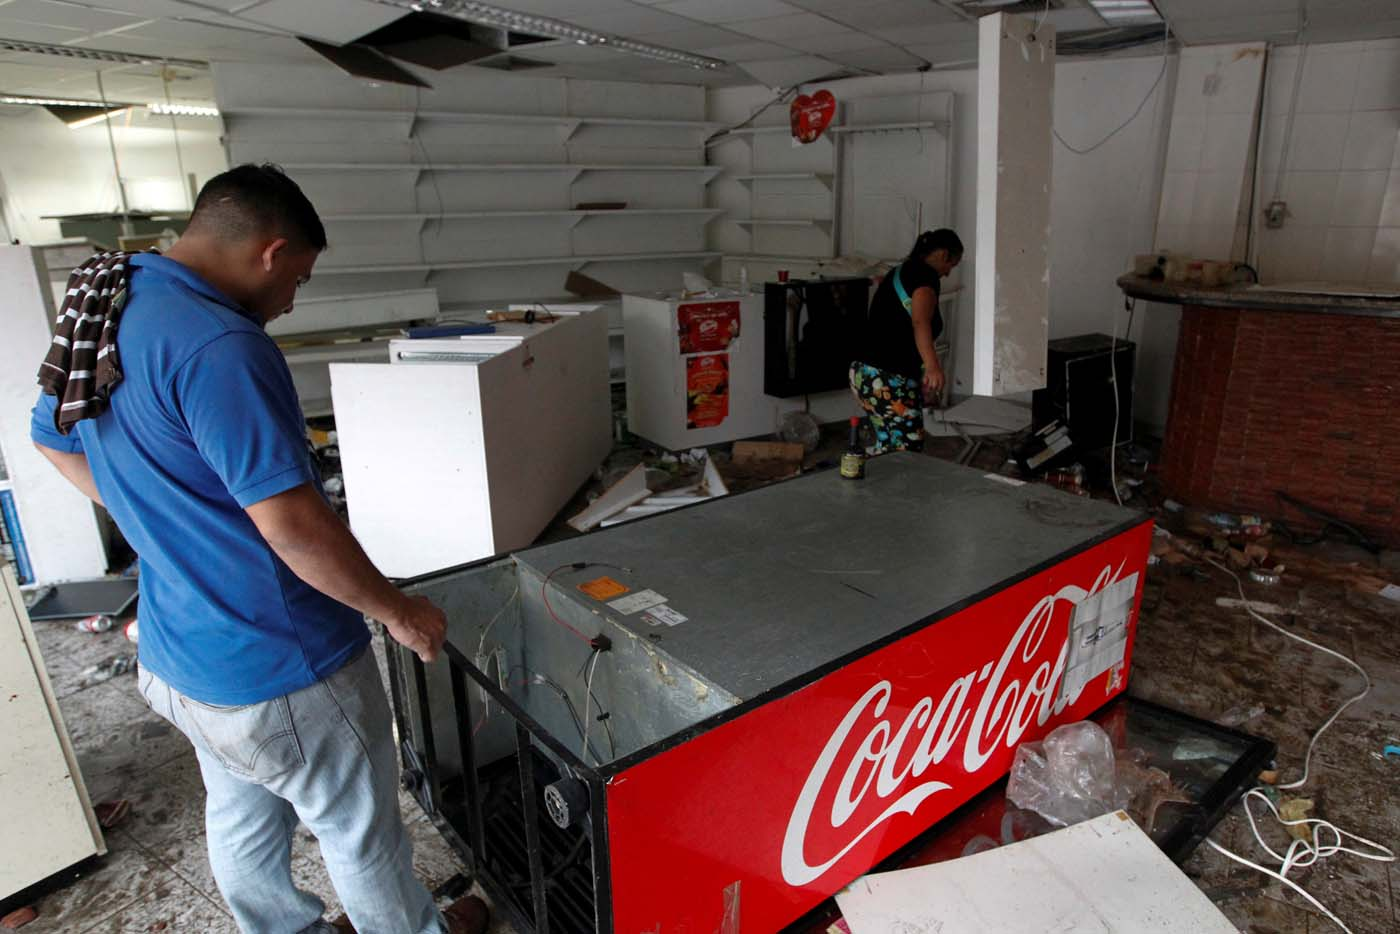 A worker looks for valuables scattered in the damaged goods in a convenience store, after it was looted in Caracas, Venezuela April 21, 2017. REUTERS/Christian Veron